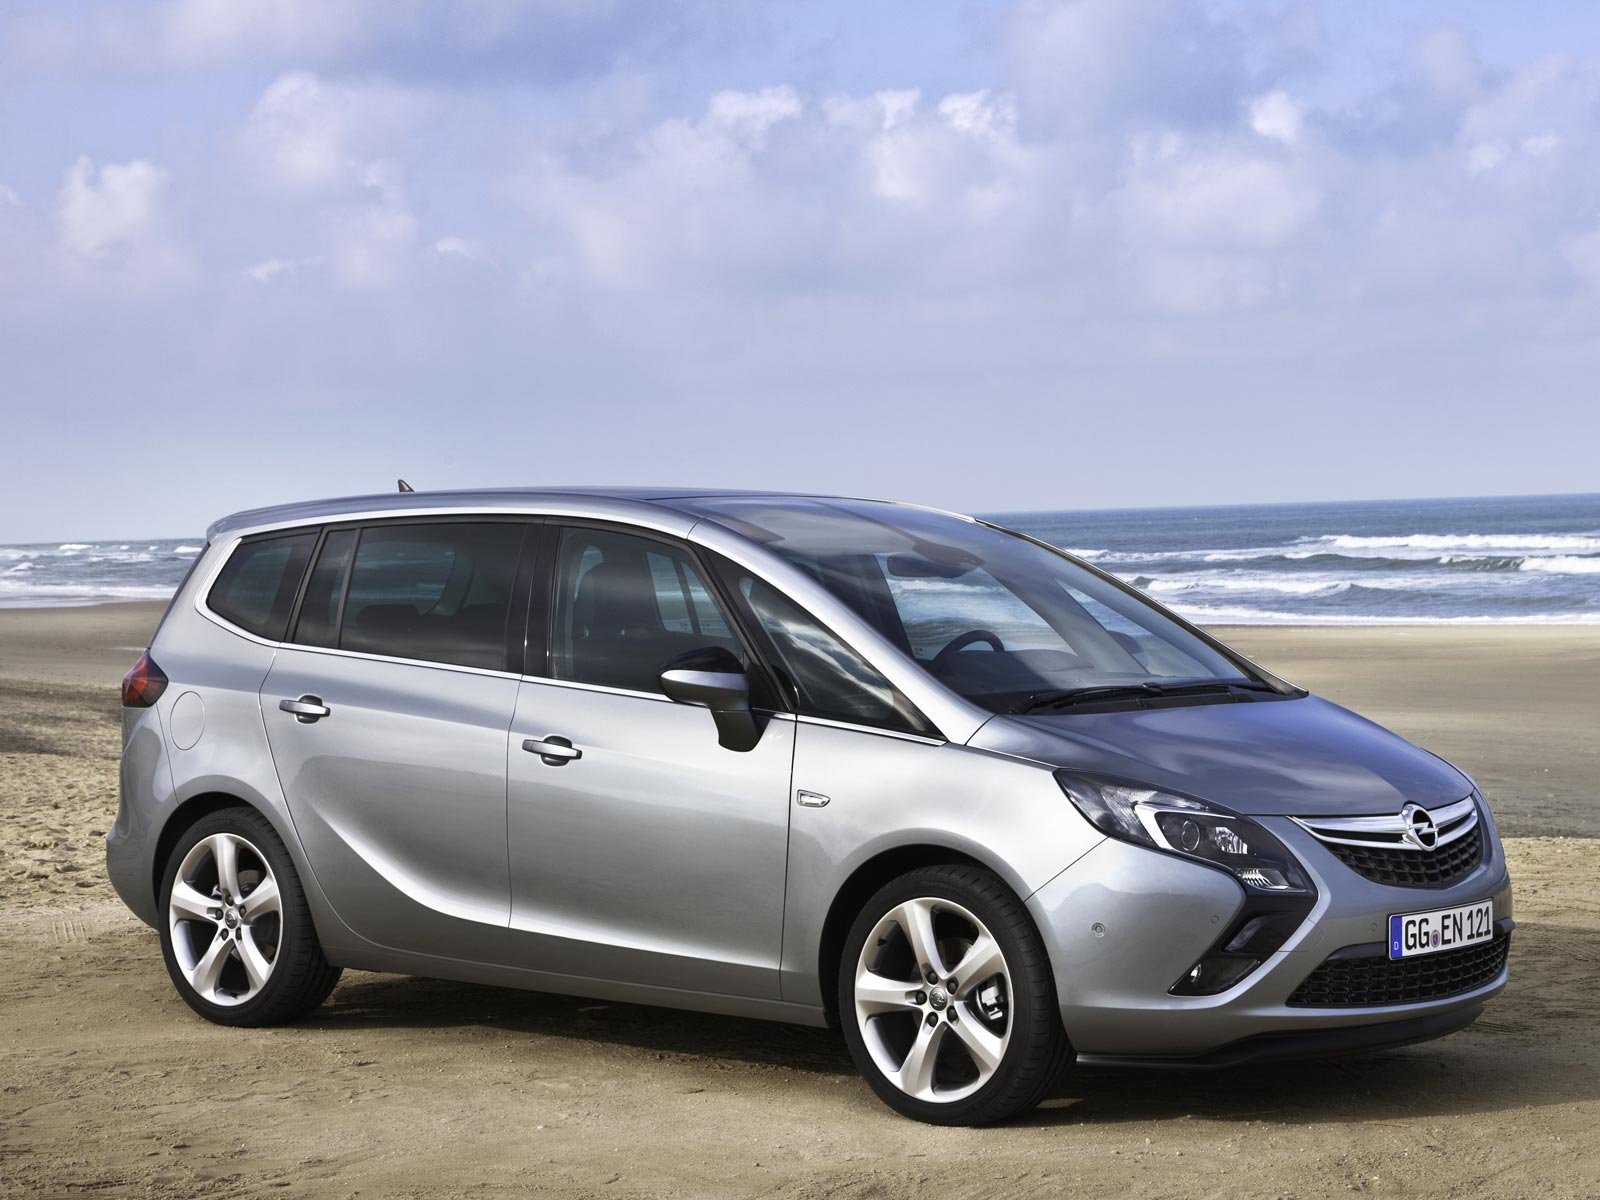 2019 Opel Zafira Tourer photo - 1